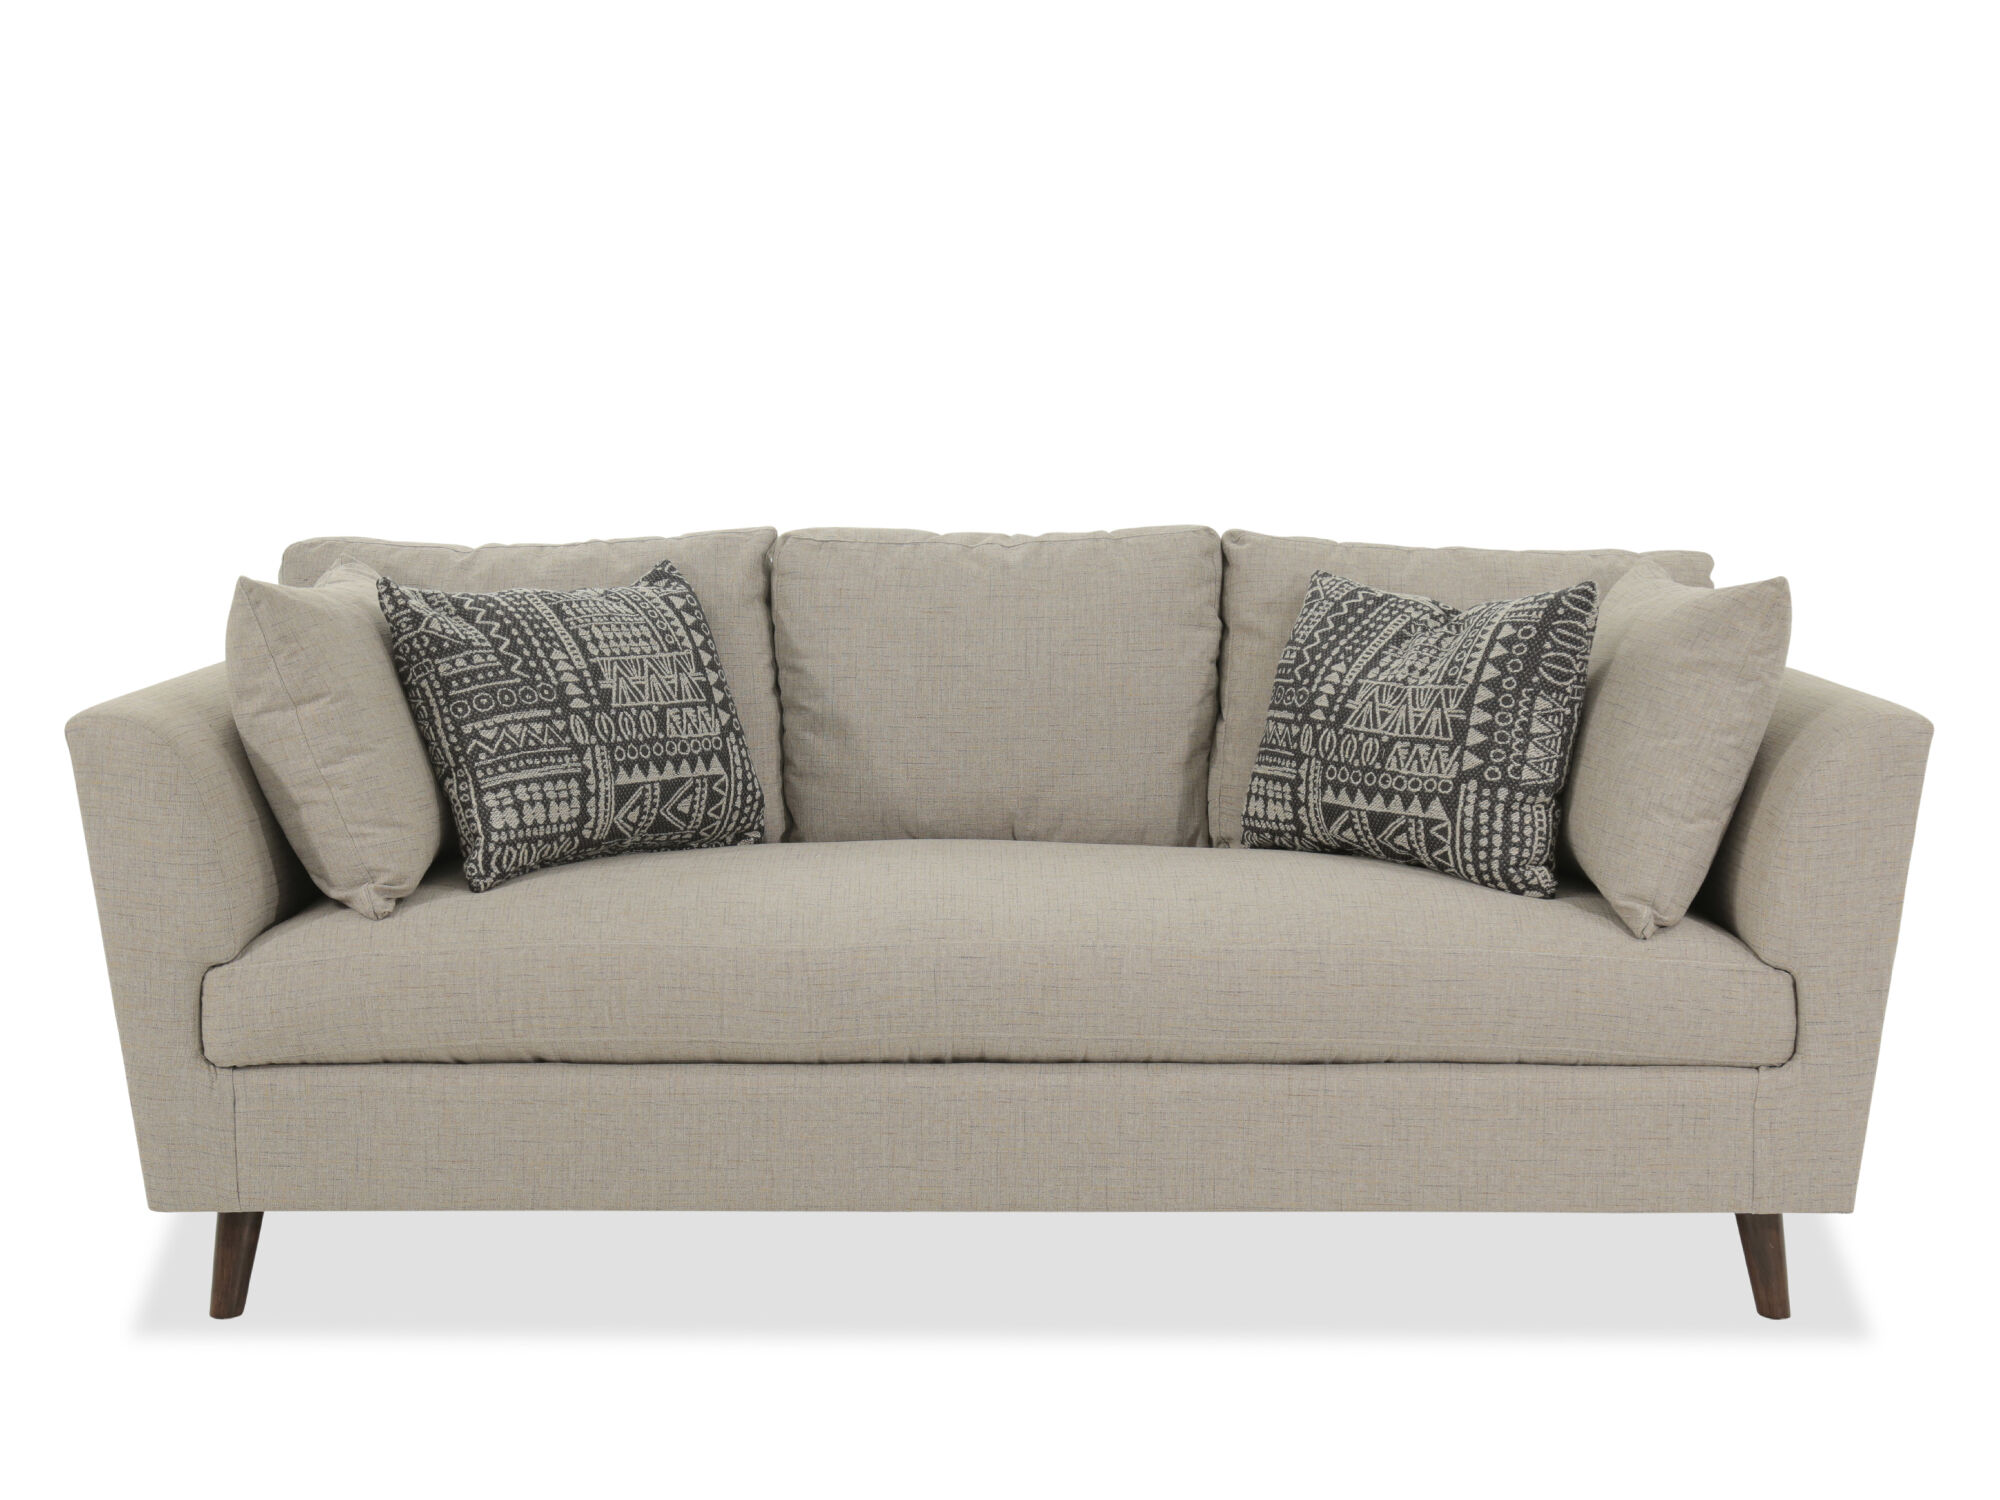 MidCentury Modern 86 Shelter Sofa in Beige Mathis Brothers